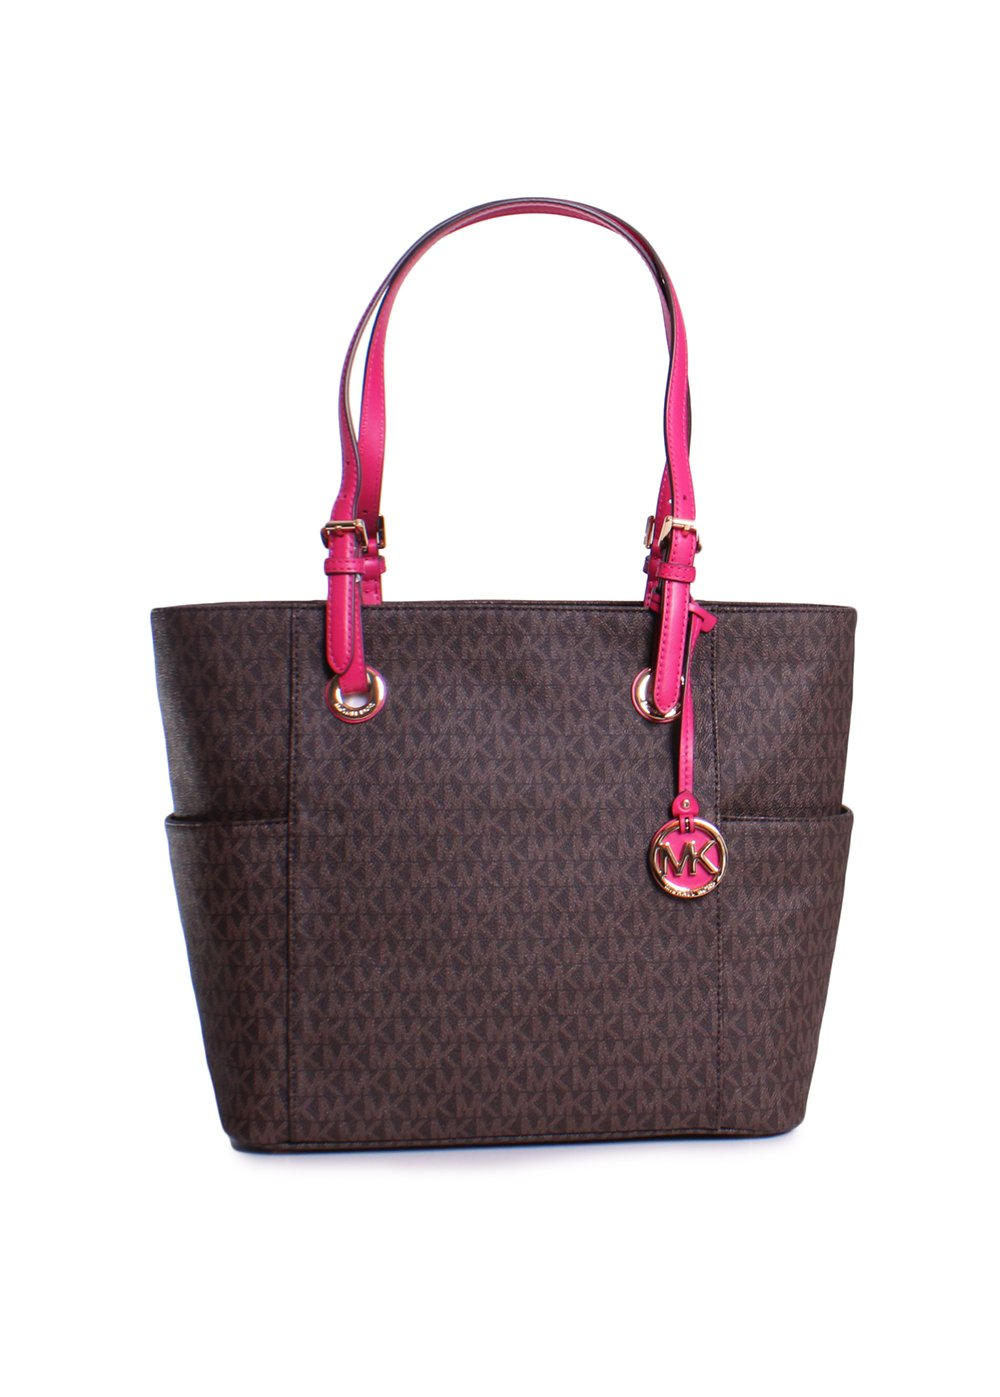 MICHAEL Michael Kors Large Jet Set Signature Tote, Brown/Ultra Pink